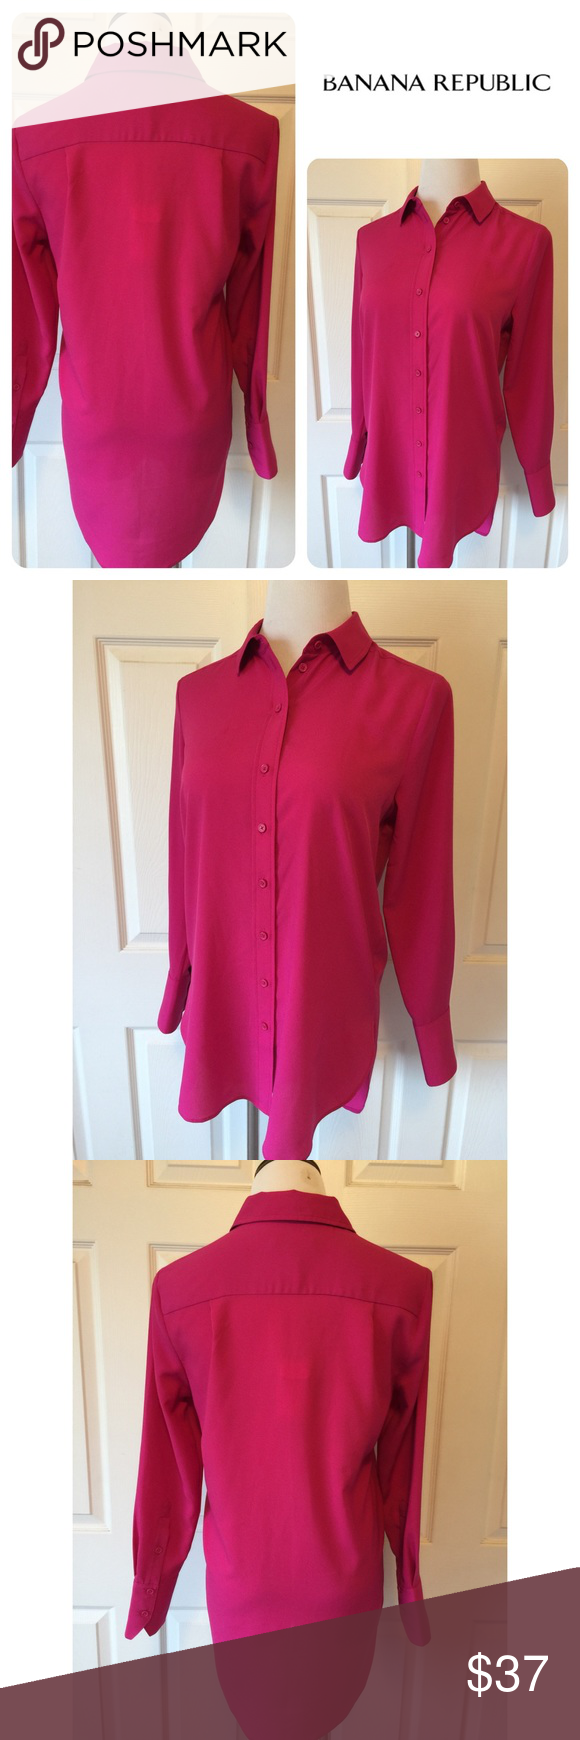 """BANANA REPUBLIC BUTTON DOWN HIGH/LOW TOP Beautiful Pink Banana Republic High/Low, Button down, Collared top🔹Size small:  38"""" bust, 26"""" front length, 31"""" back length🔹Cuffed sleeve🔹Fabric: 100% polyester🔹Machine wash🔹NO trades🔹Smoke free home 🔹Bundle discount: 10% off two, 15% off three🔹Please visit our wonderful friend 🔹Molinda @molinda25🔹To find more Banana Republic treasures🔹Thank you for stopping by💕 Banana Republic Tops Button Down Shirts"""